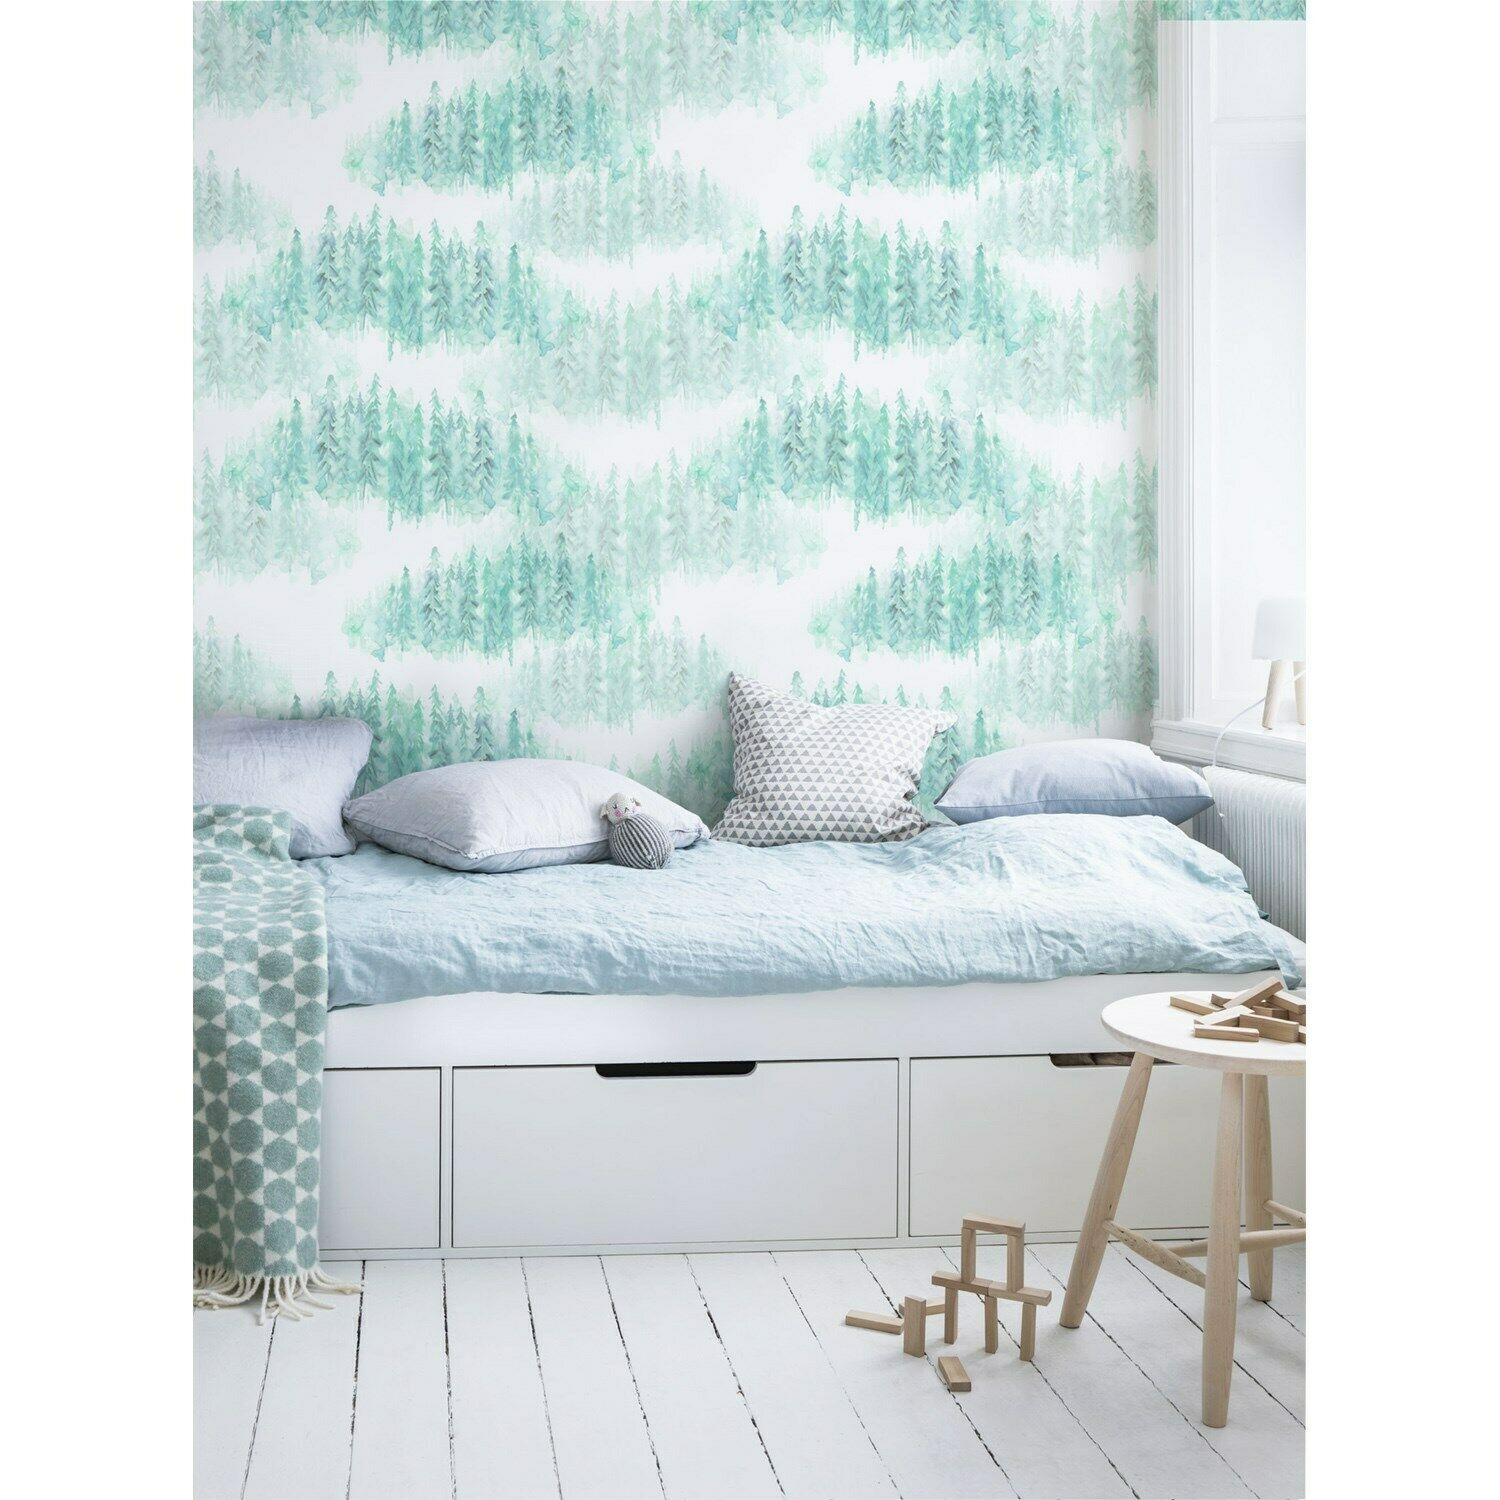 Bright Forest removable wallpaper Grün Nature wall mural Trees decor